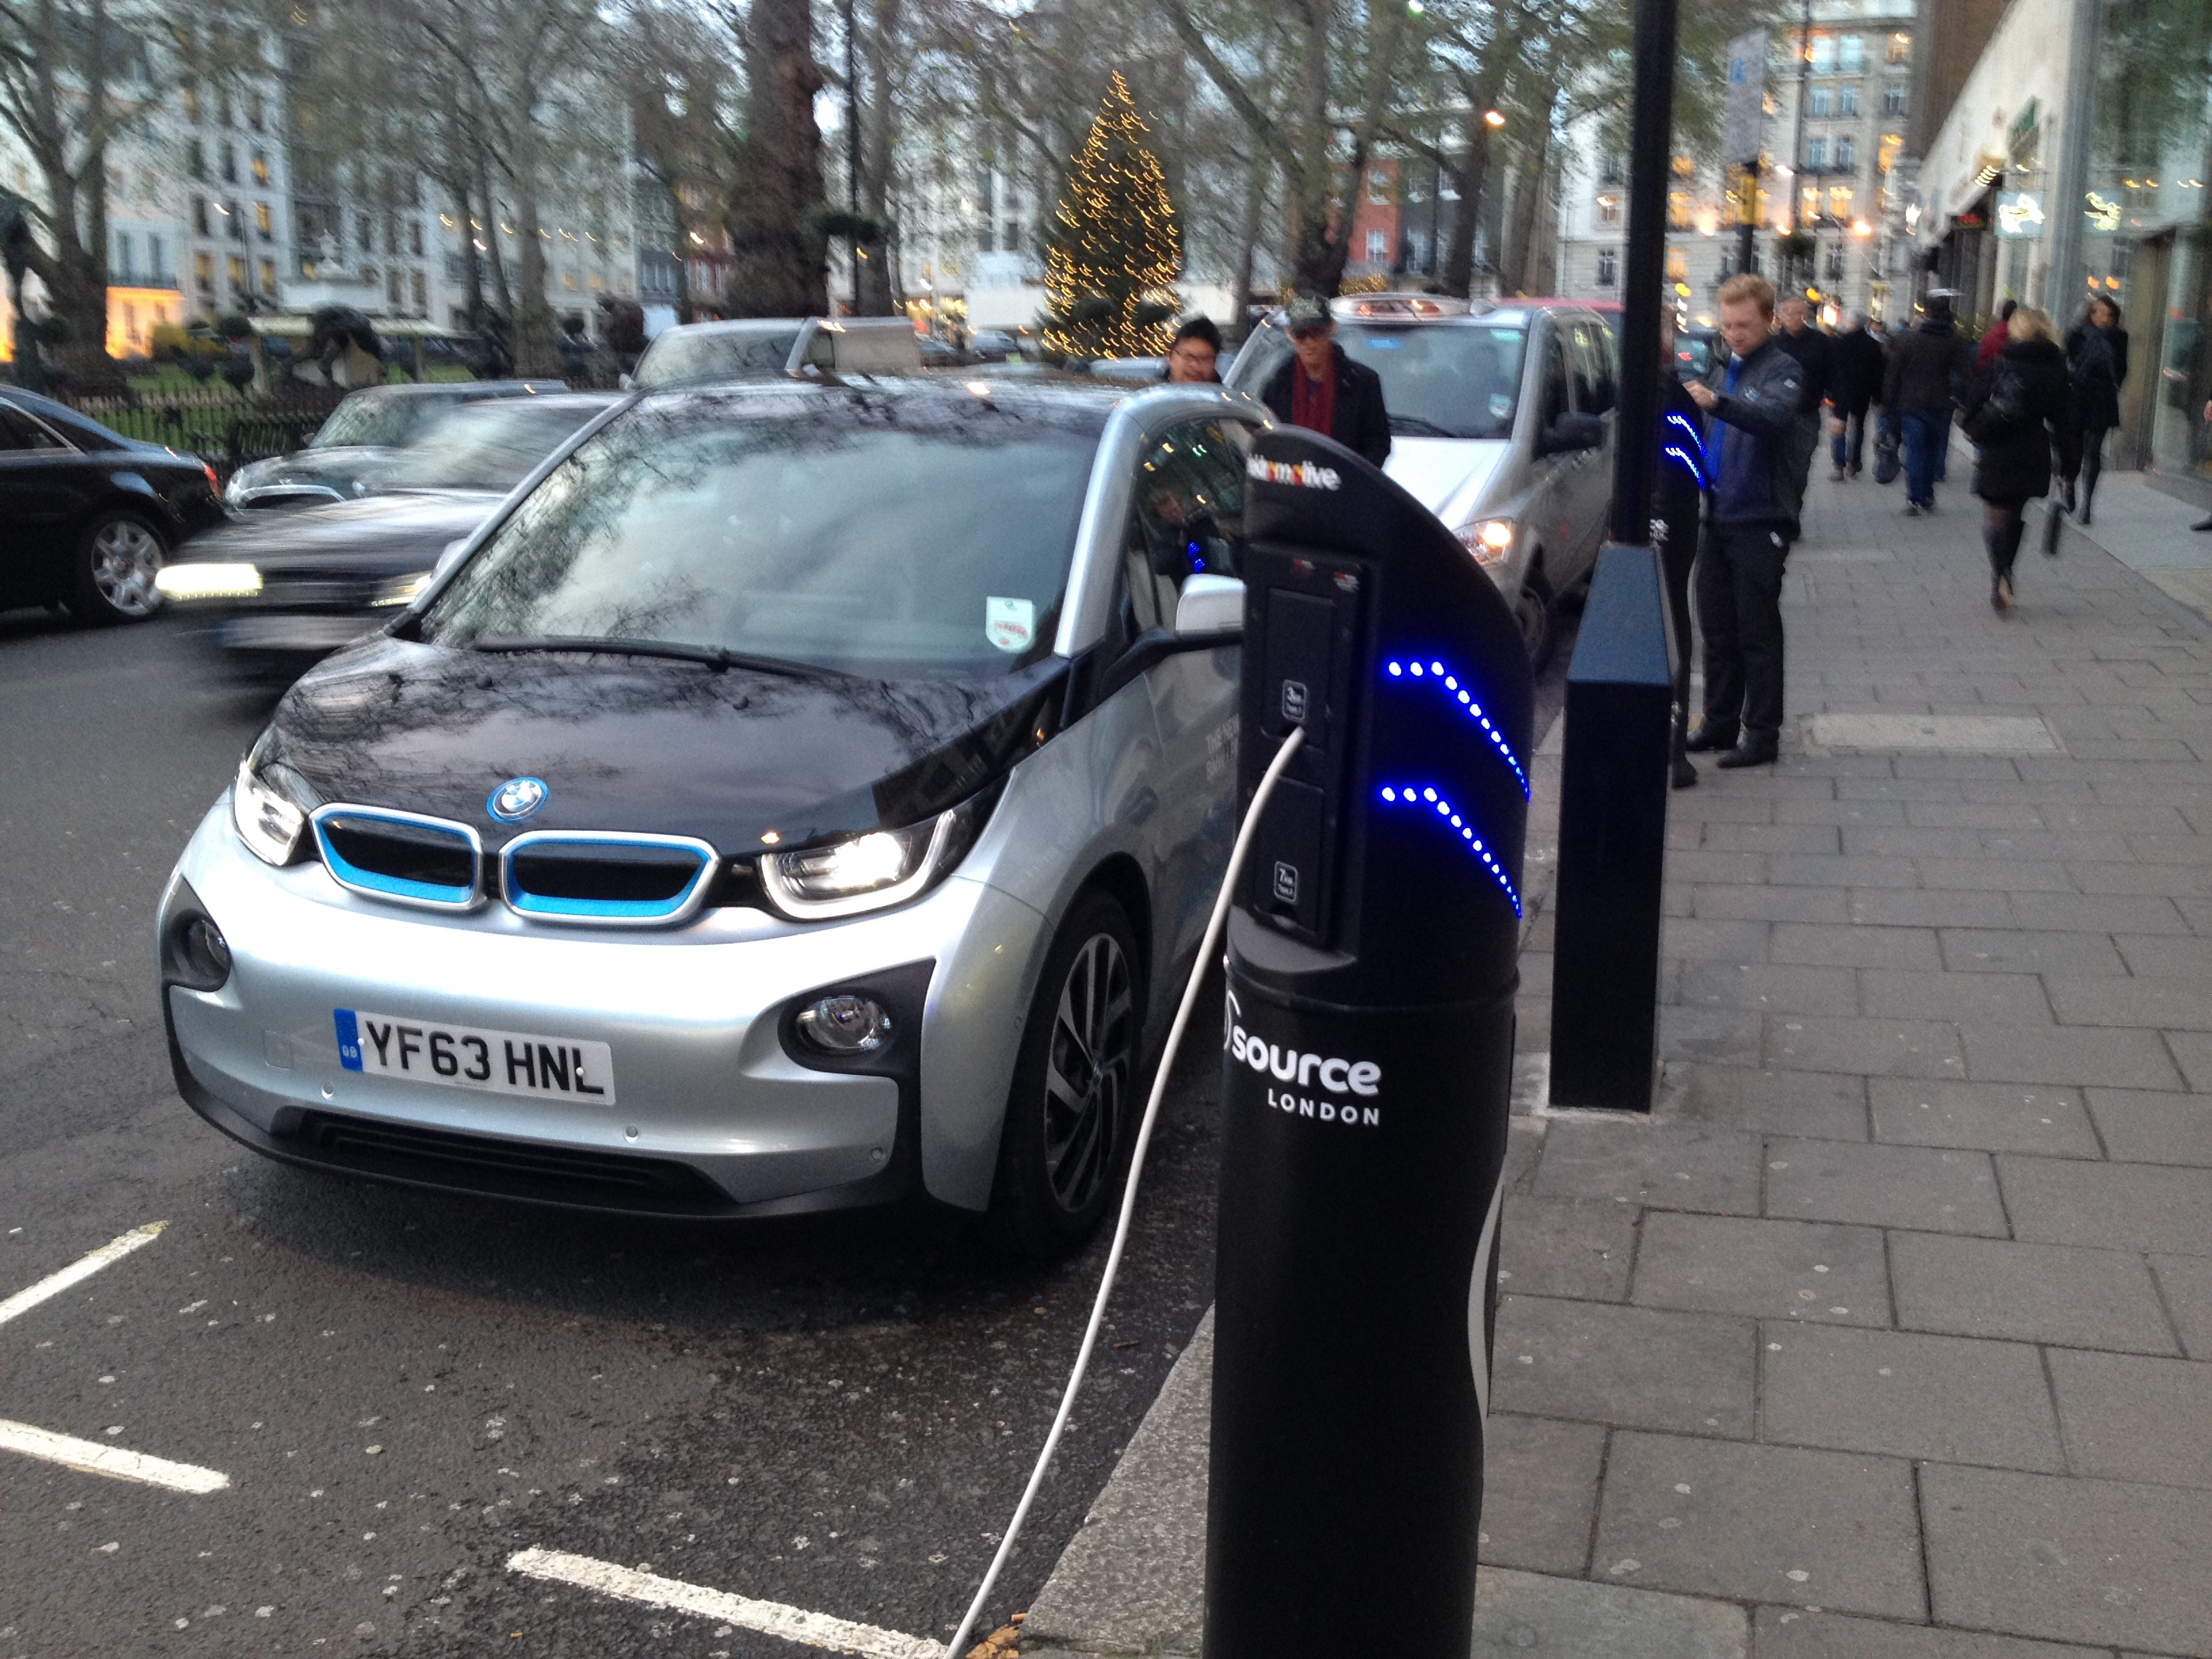 BMW i3 charging at Source London